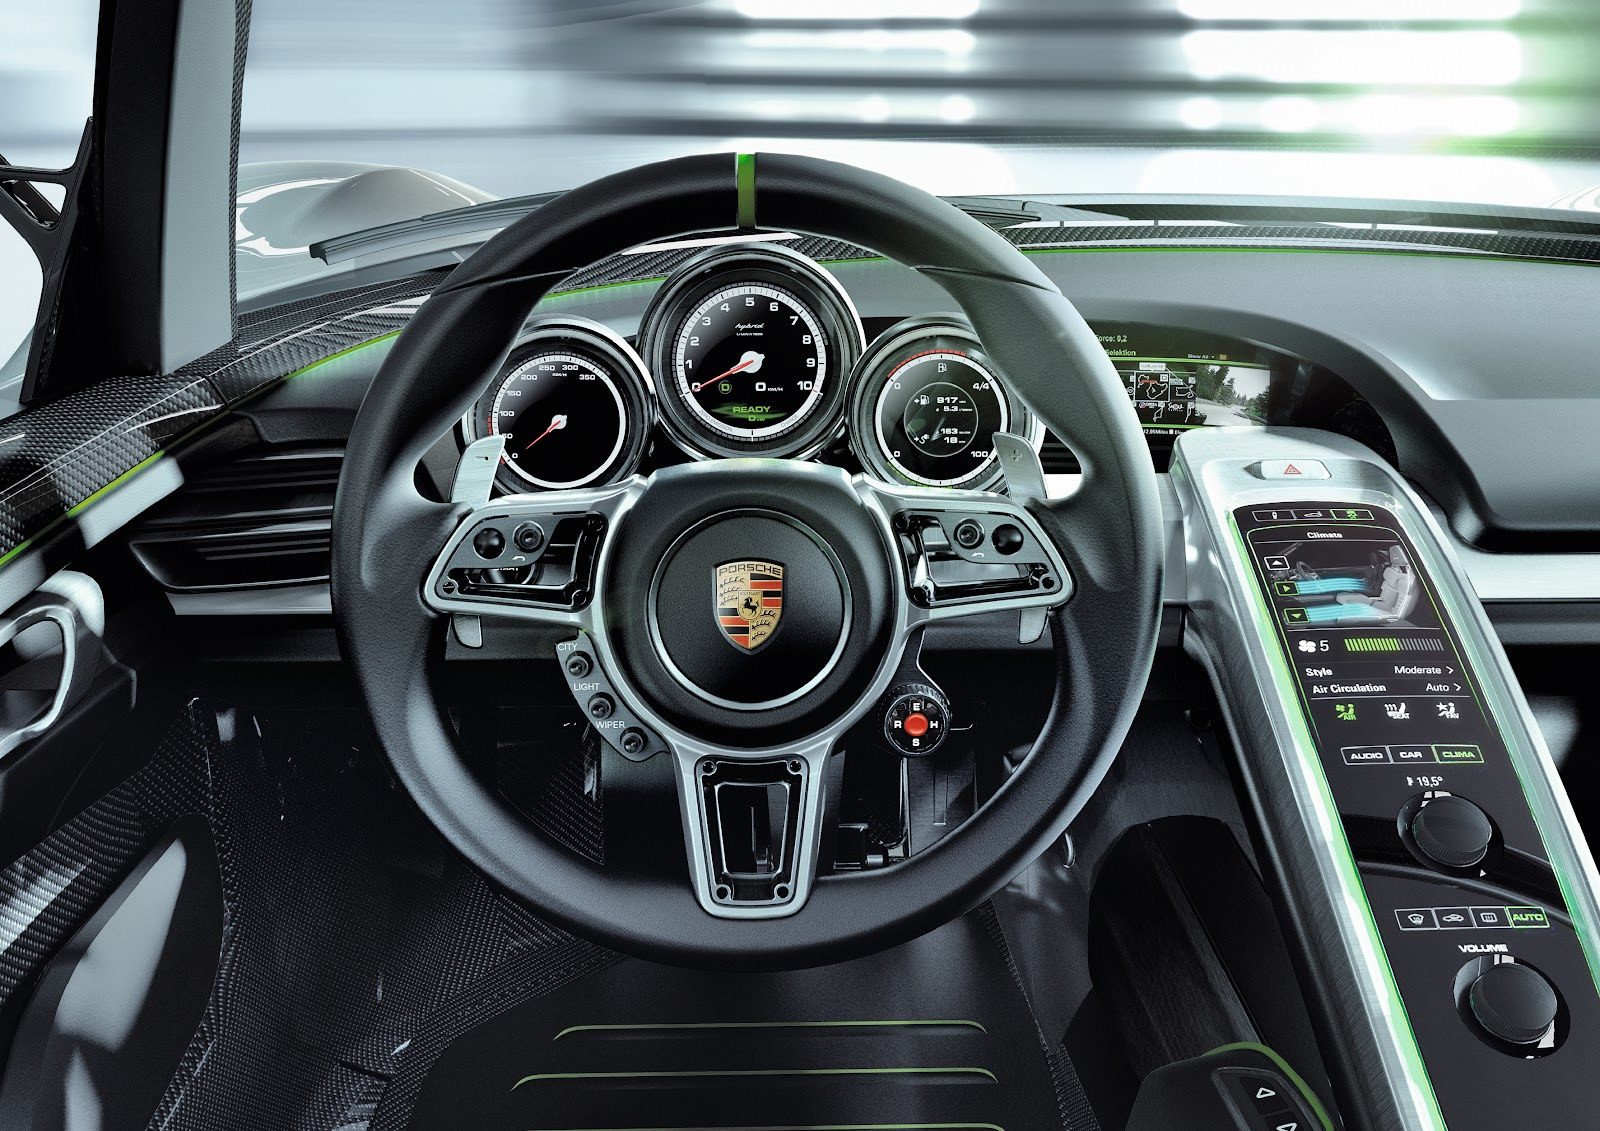 porsche 918 spyder off to production us official press release - Porsche Spyder 2013